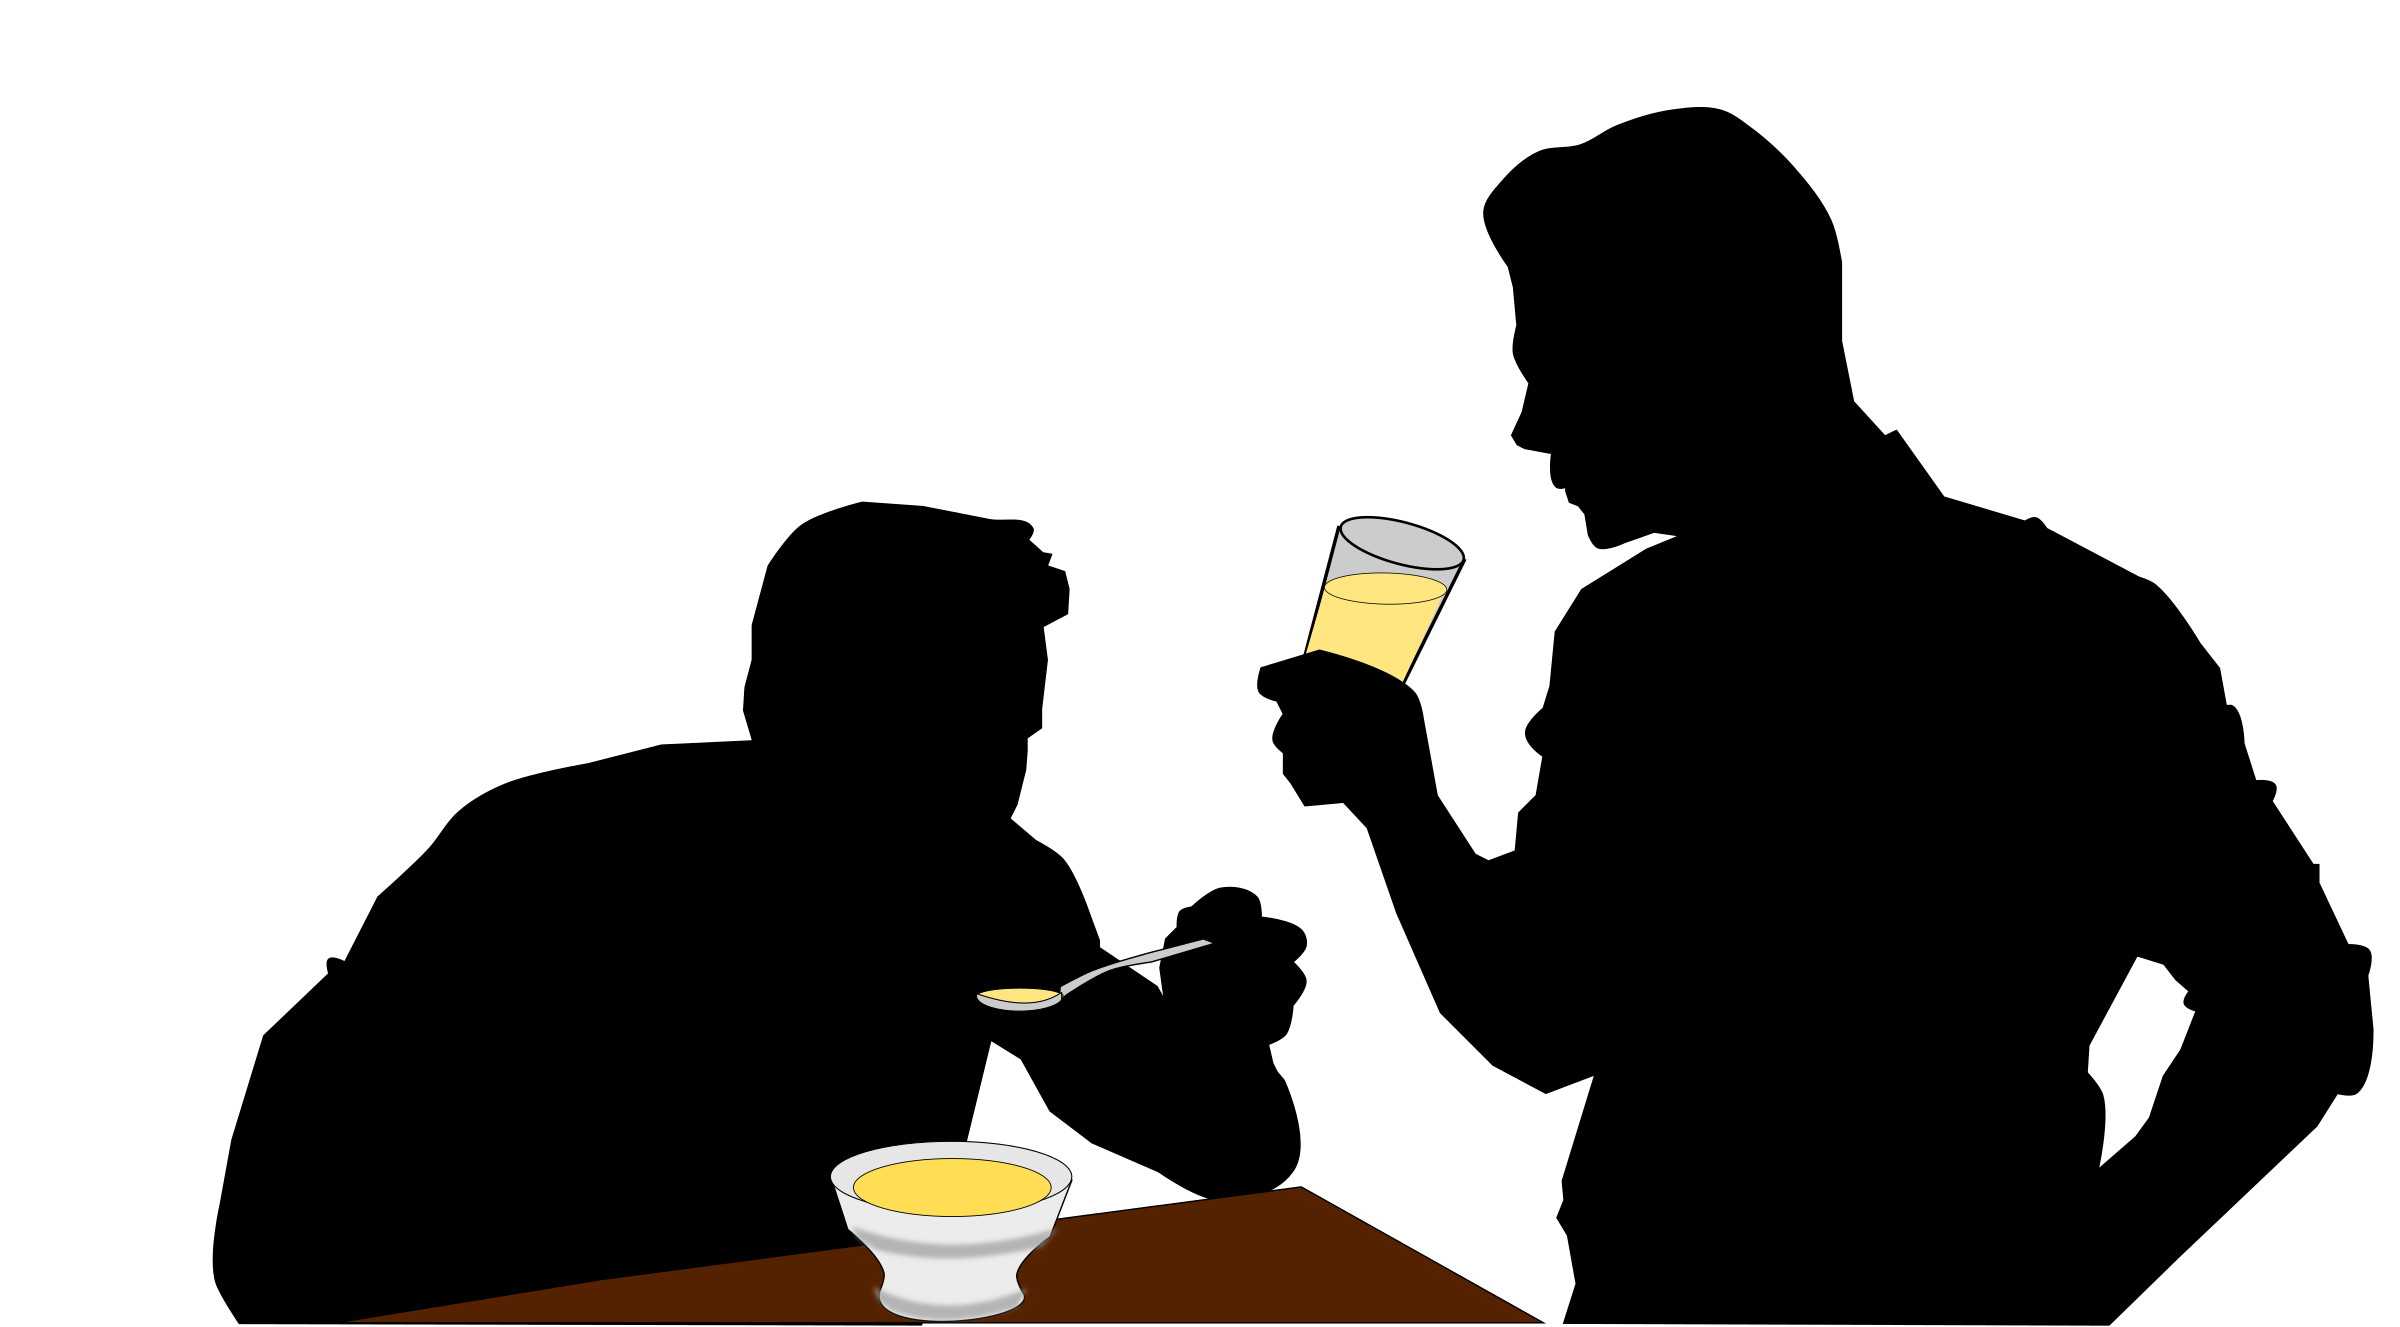 Drink clipart alcohol. Eating and drinking big